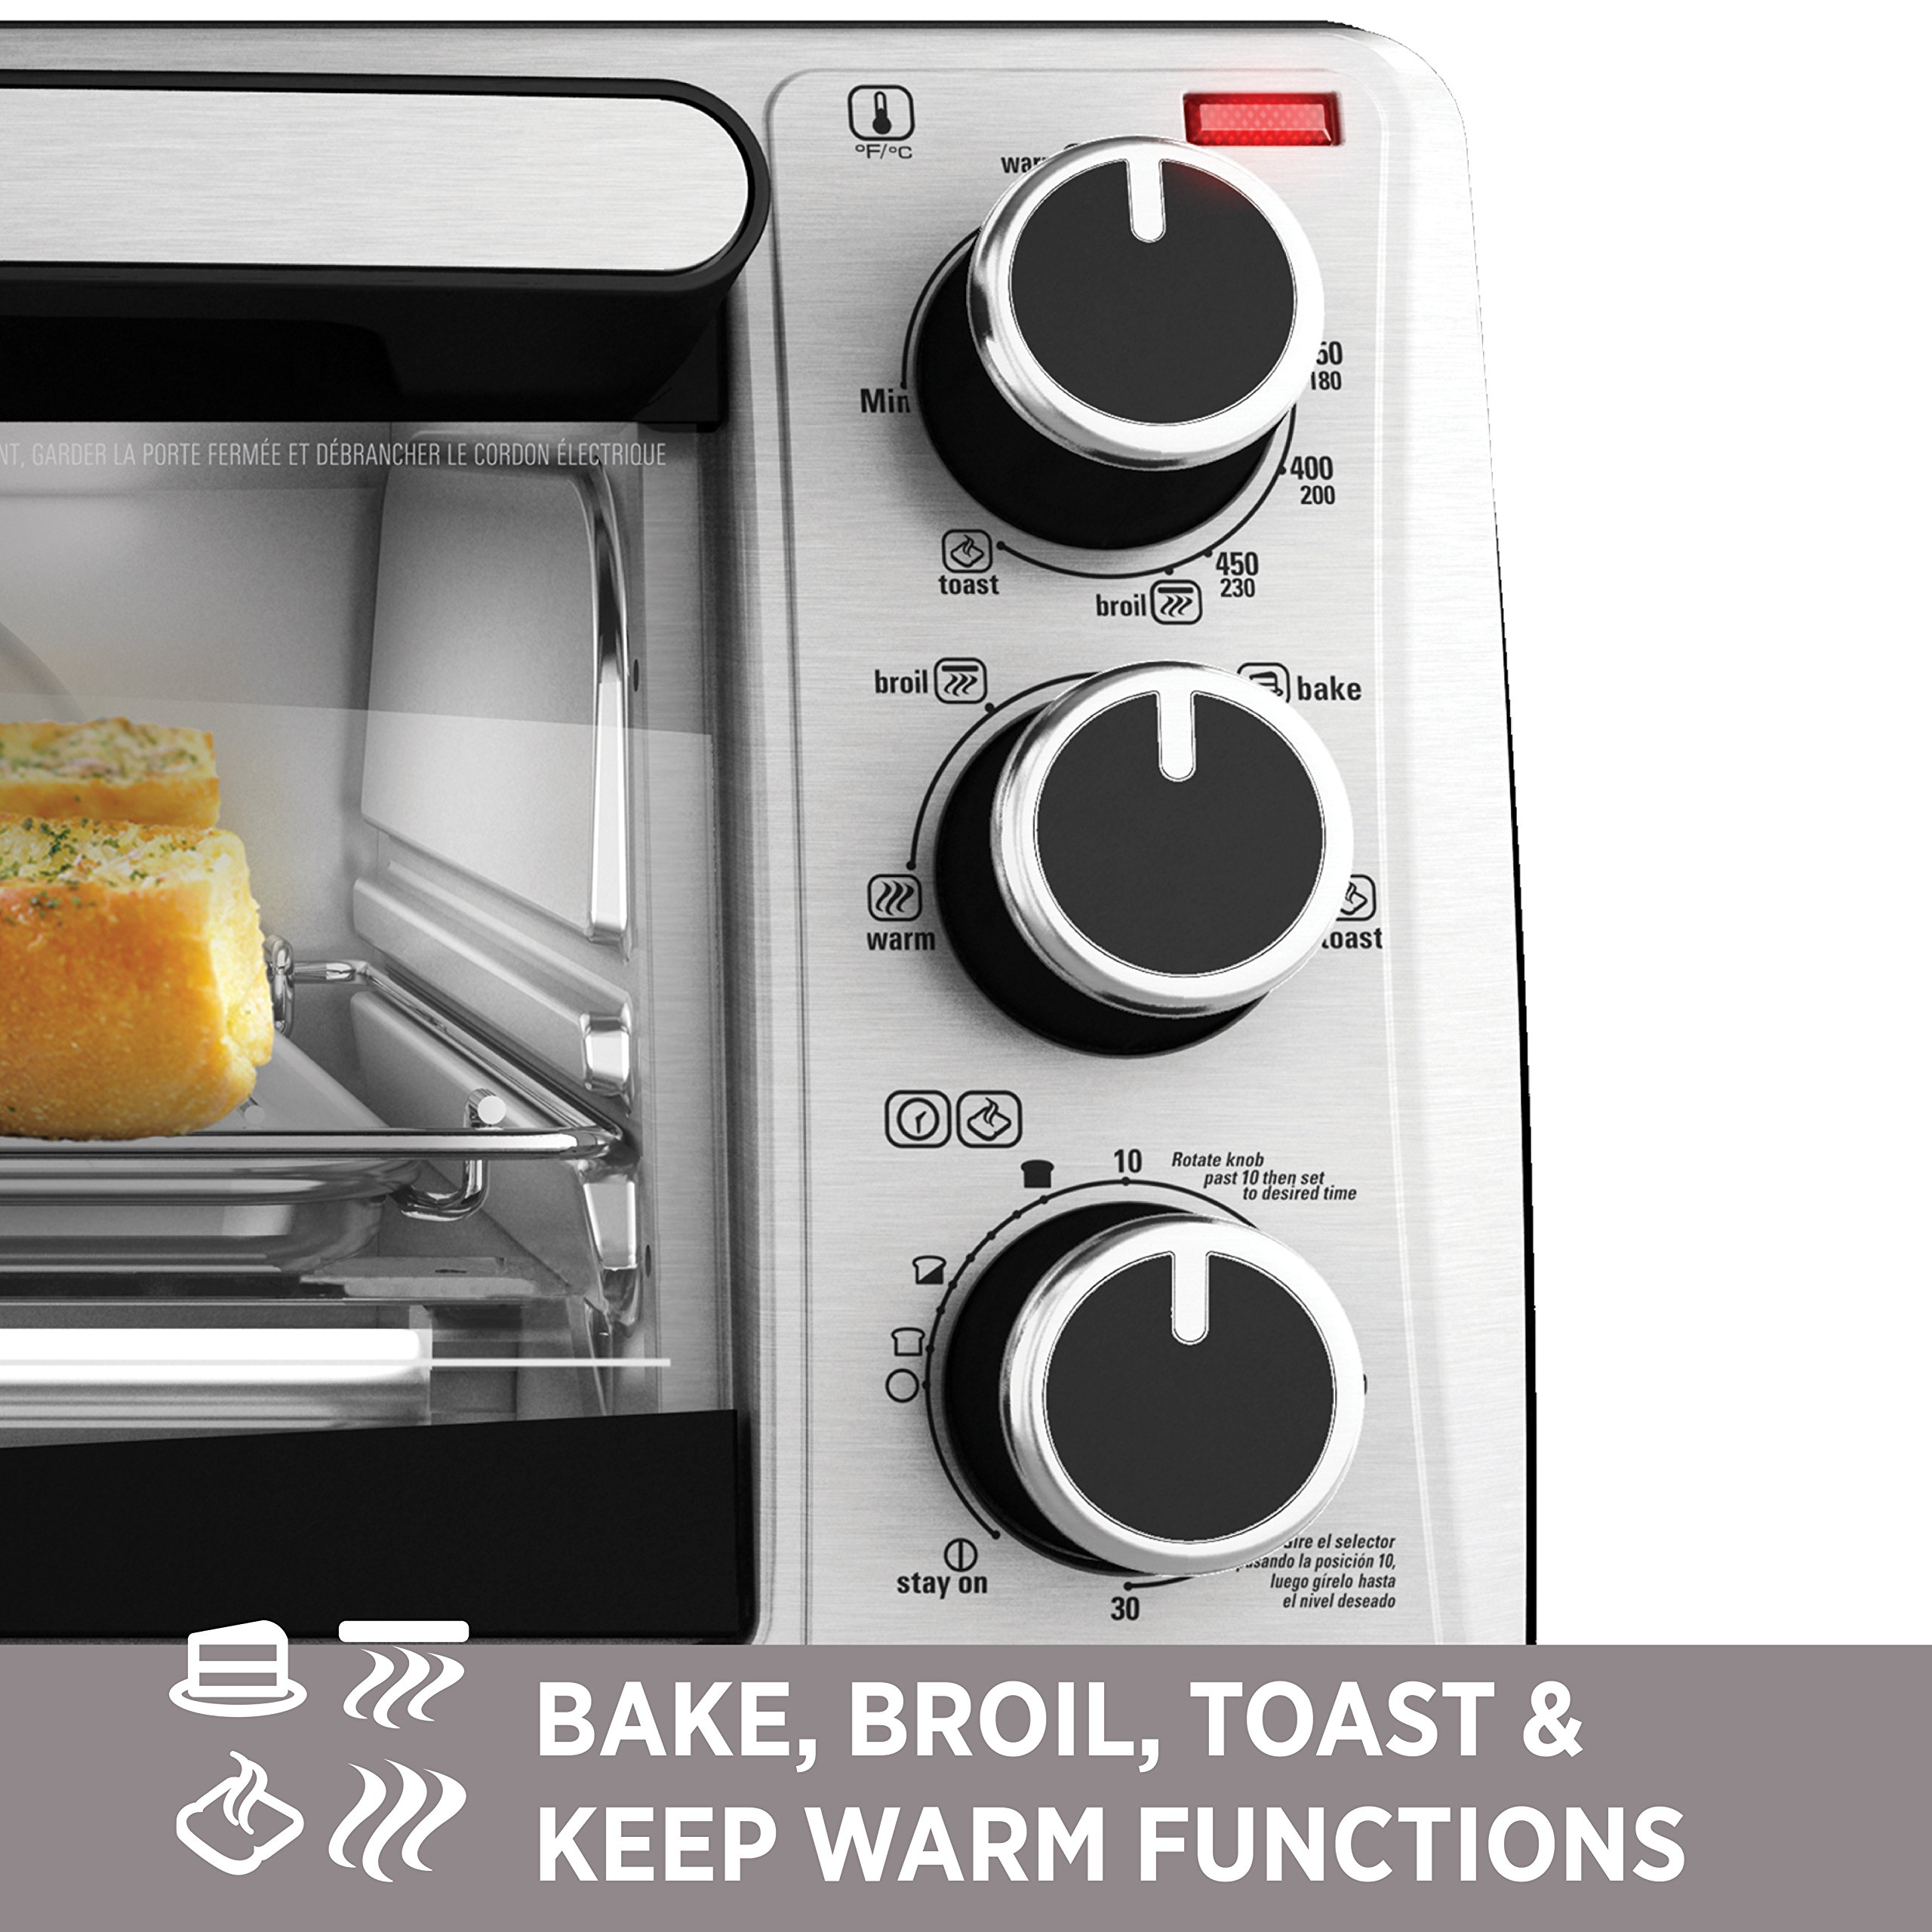 Countertop Oven For Baking Philippines : Galleon - BLACK+DECKER TO1303SB 4-Slice Toaster Oven, Includes Bake ...